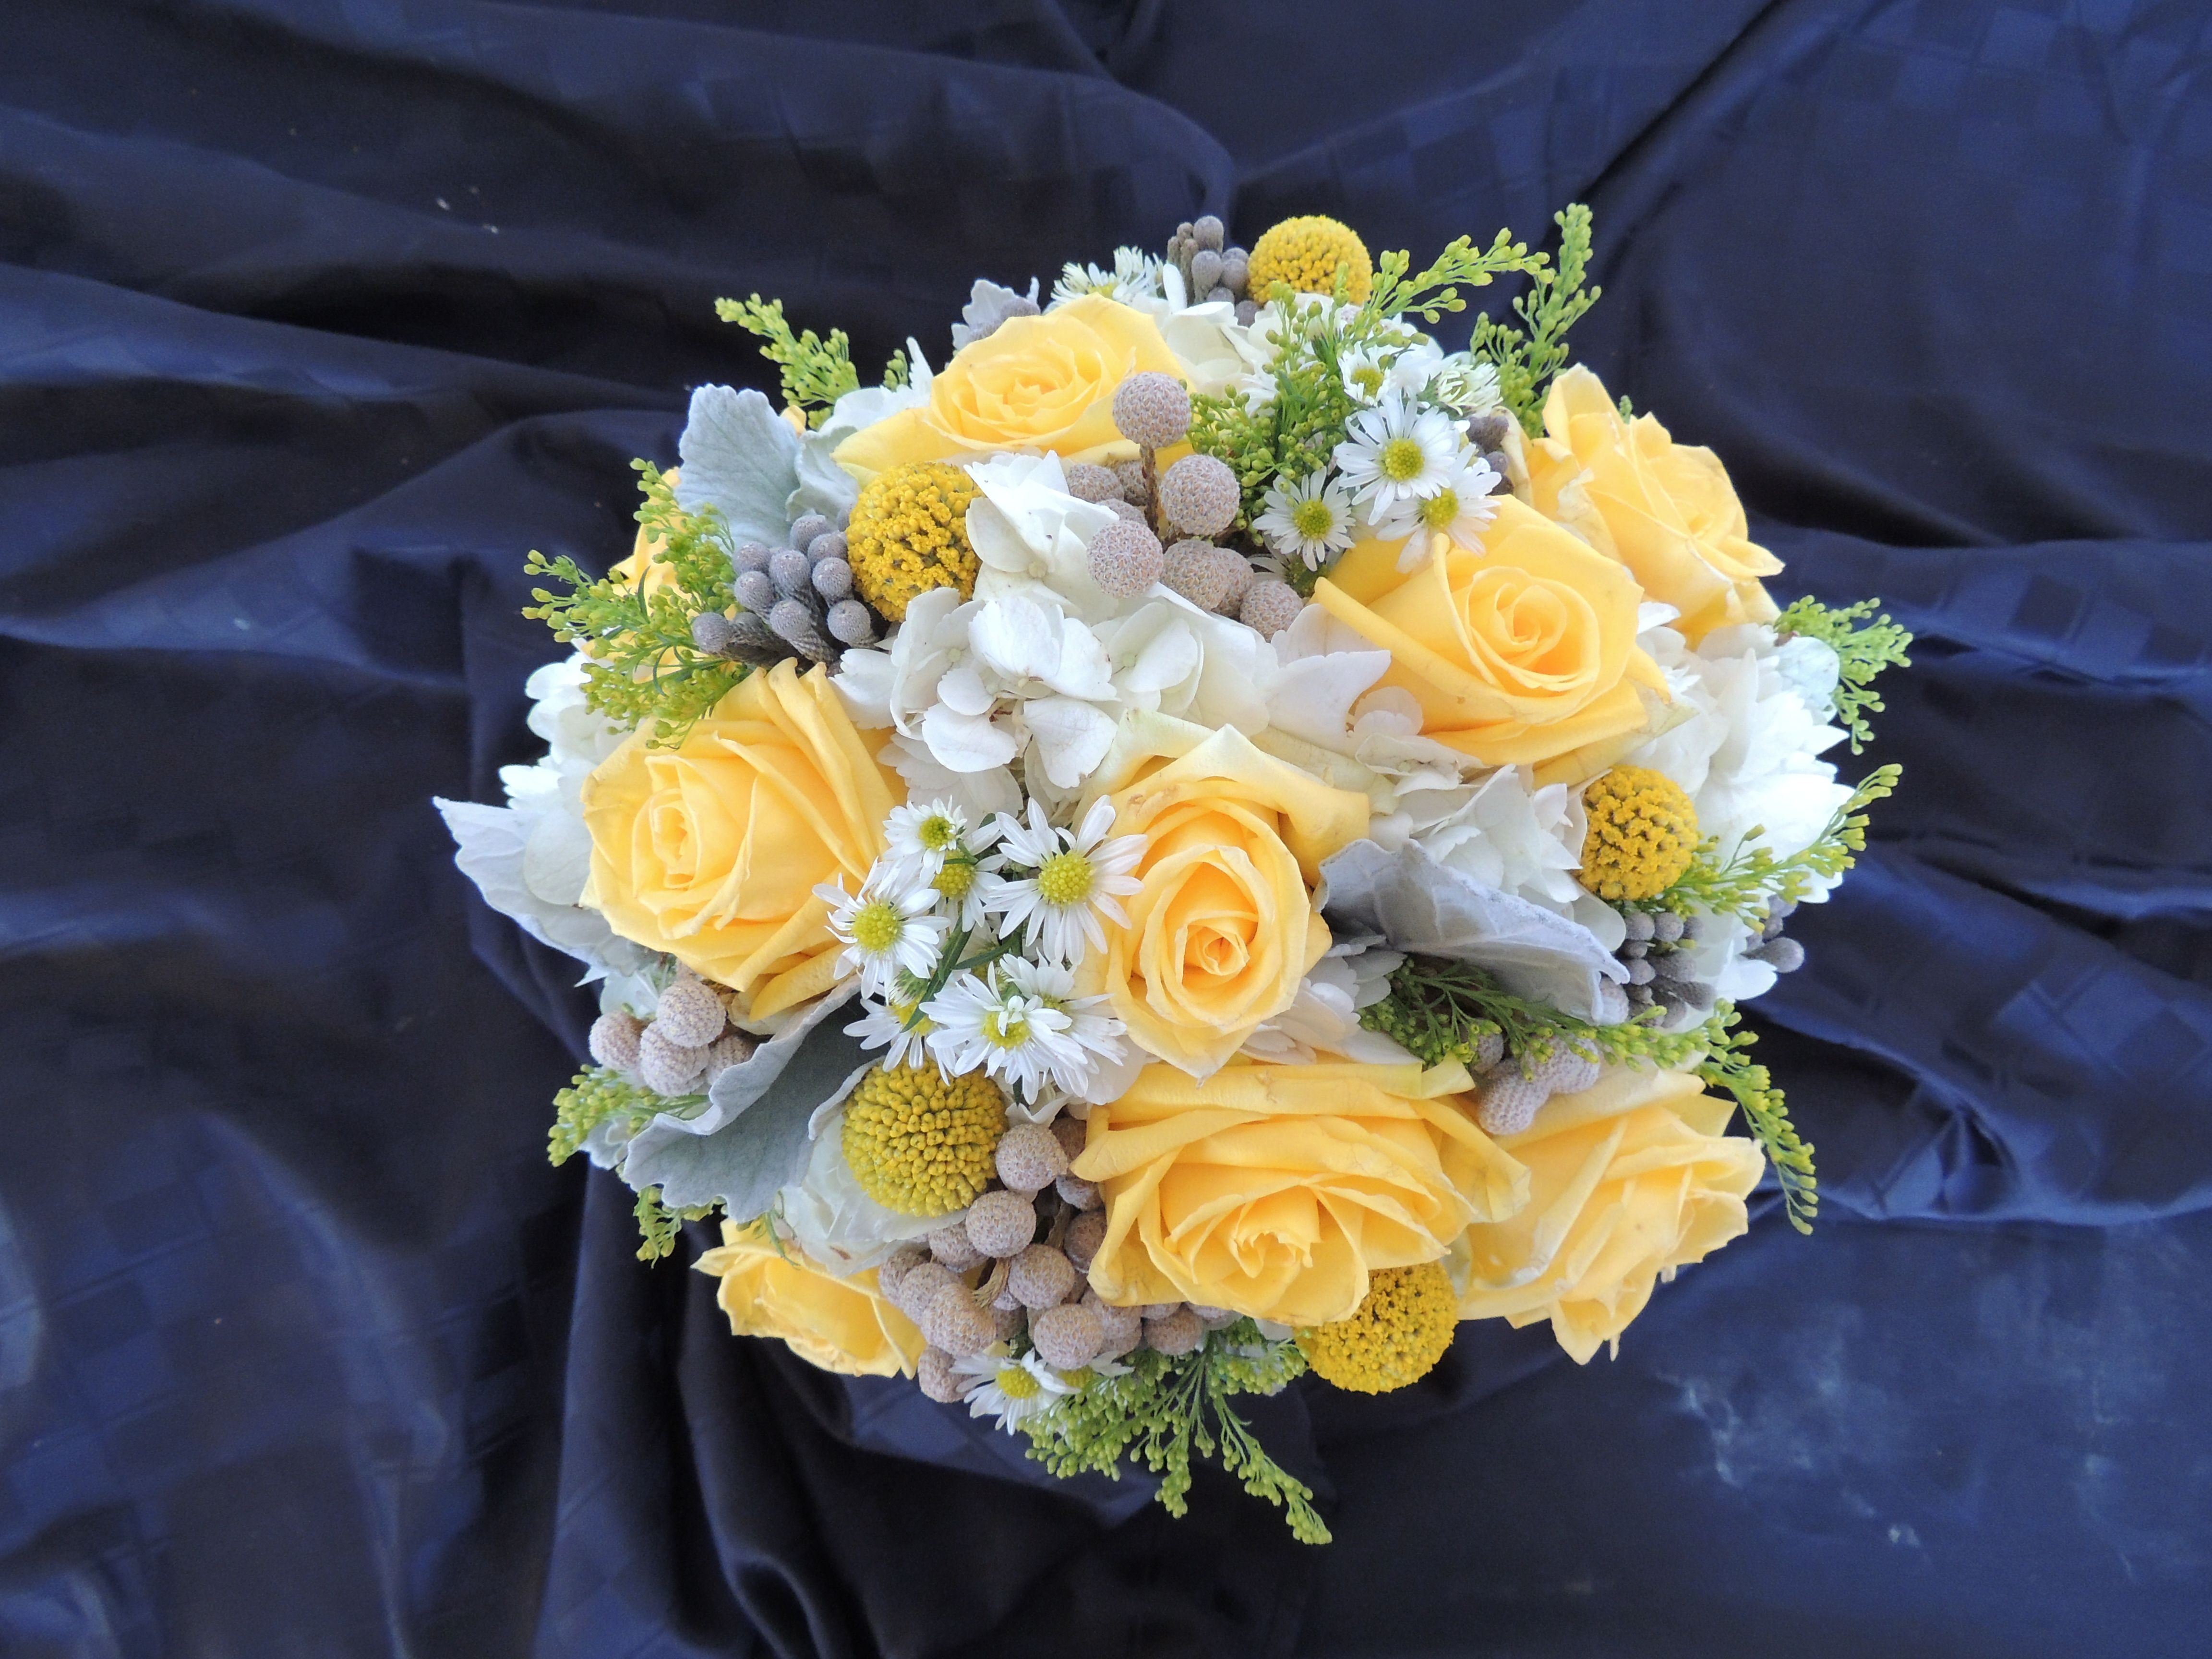 Yellow rose bouquet with white and gray accent color flowers ...